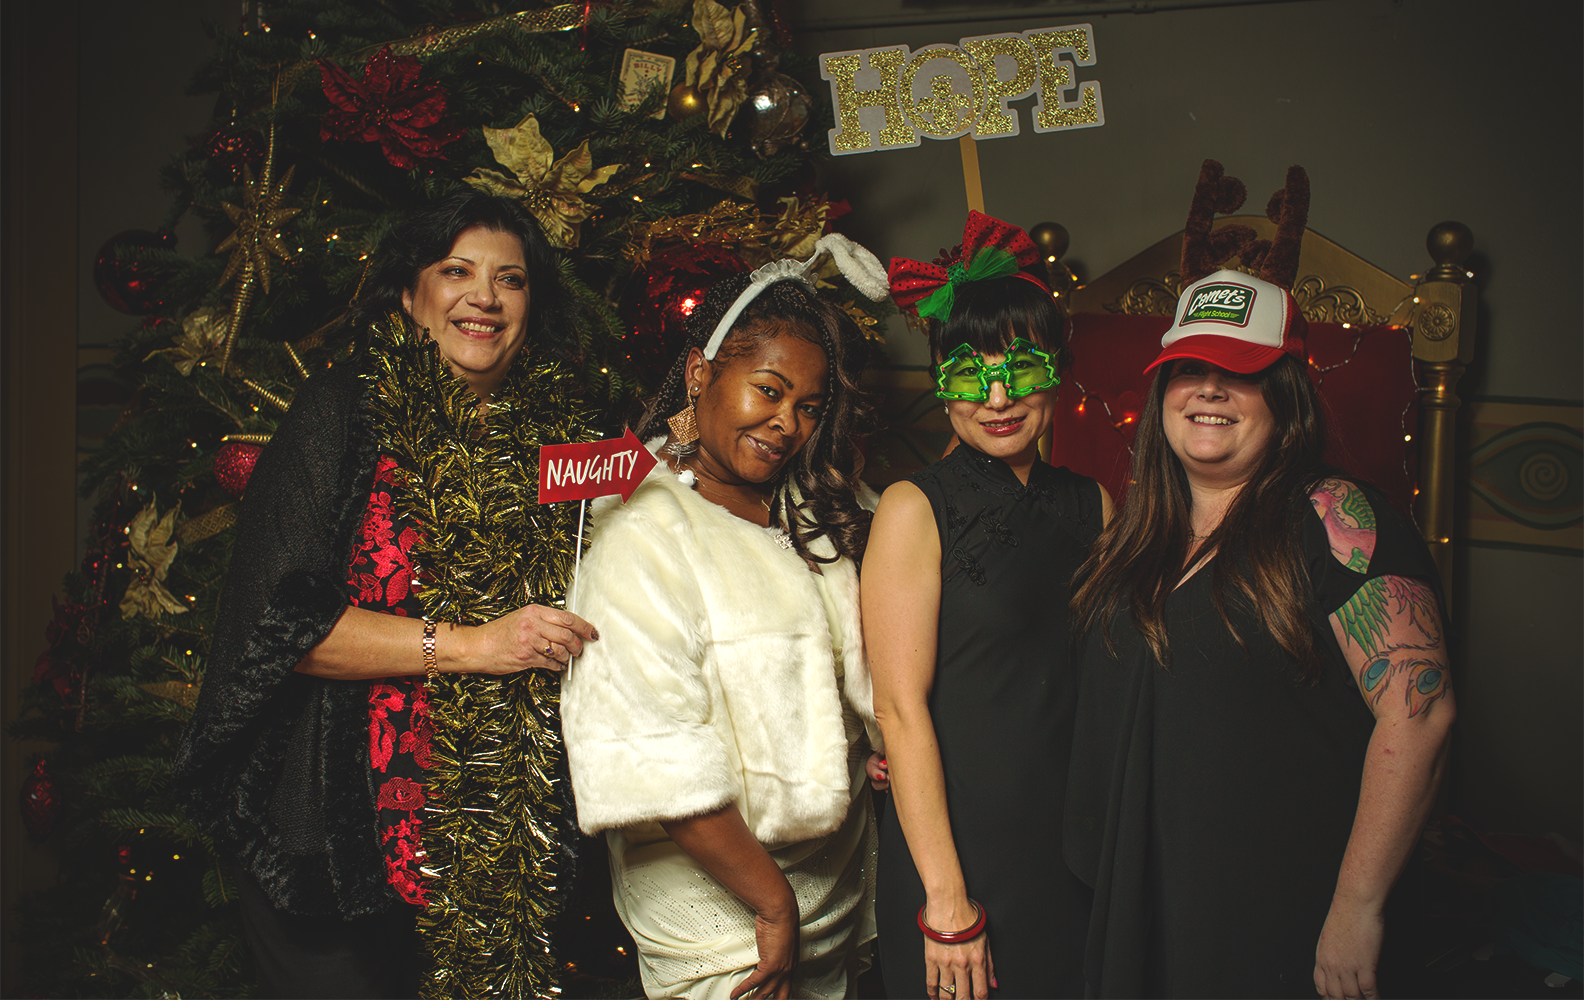 epproperties-vancouver-washington-xmas-party-photolga14.png